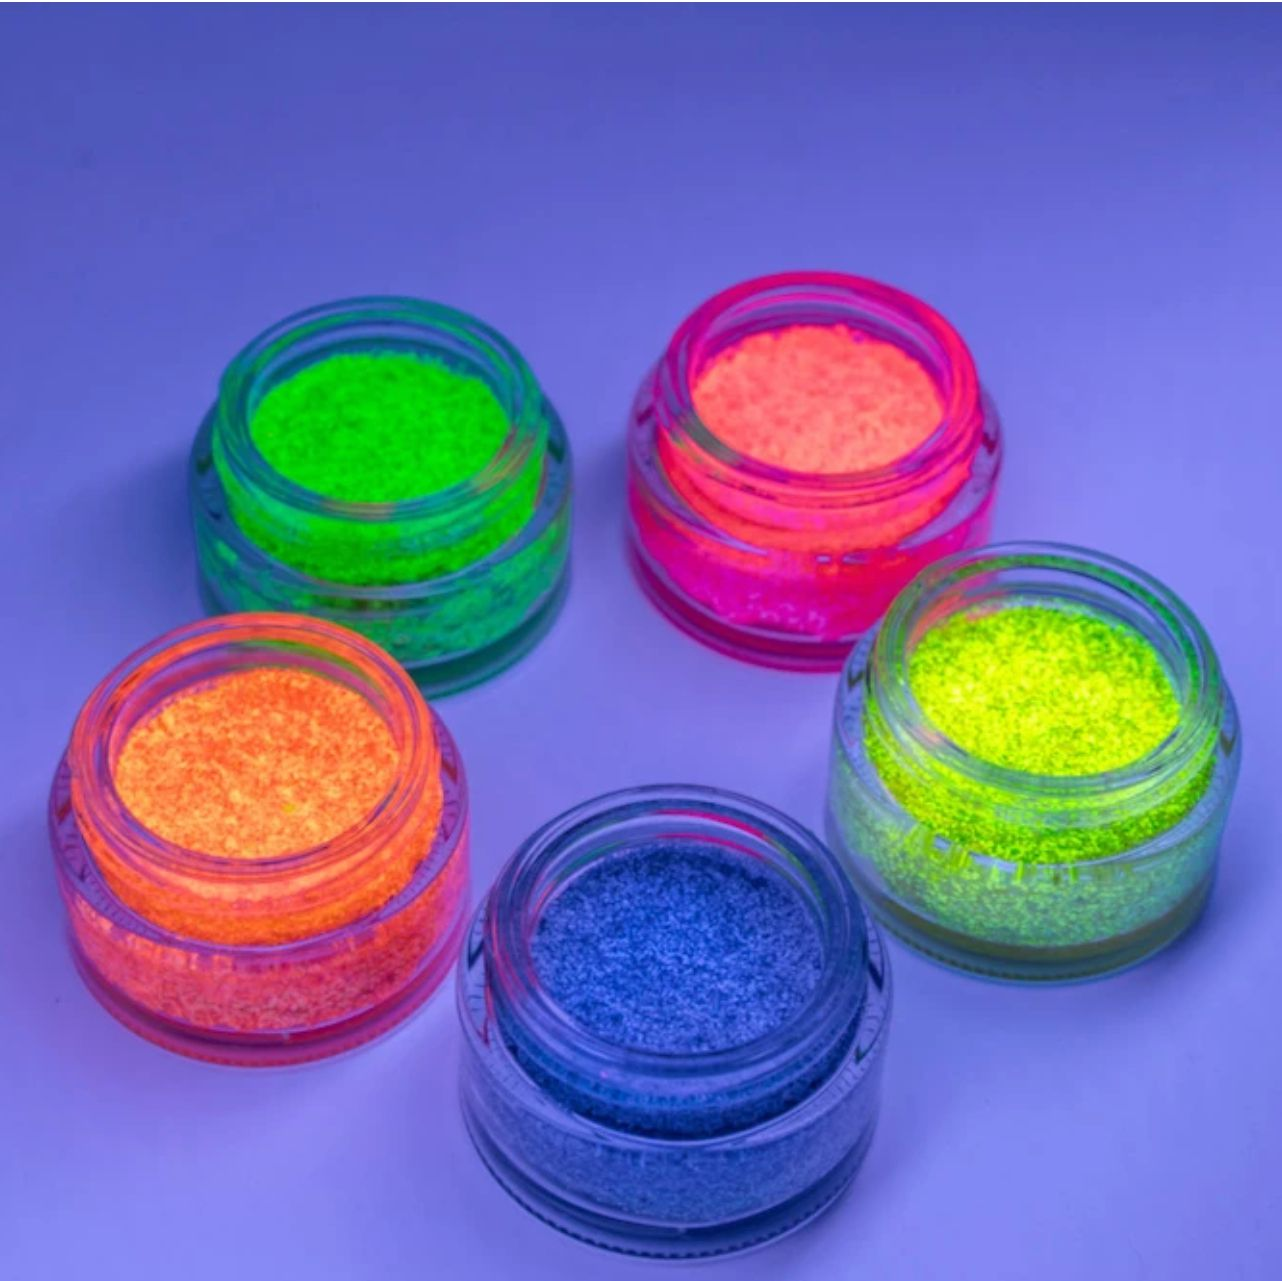 12 Beauty Products That Glow In The Dark